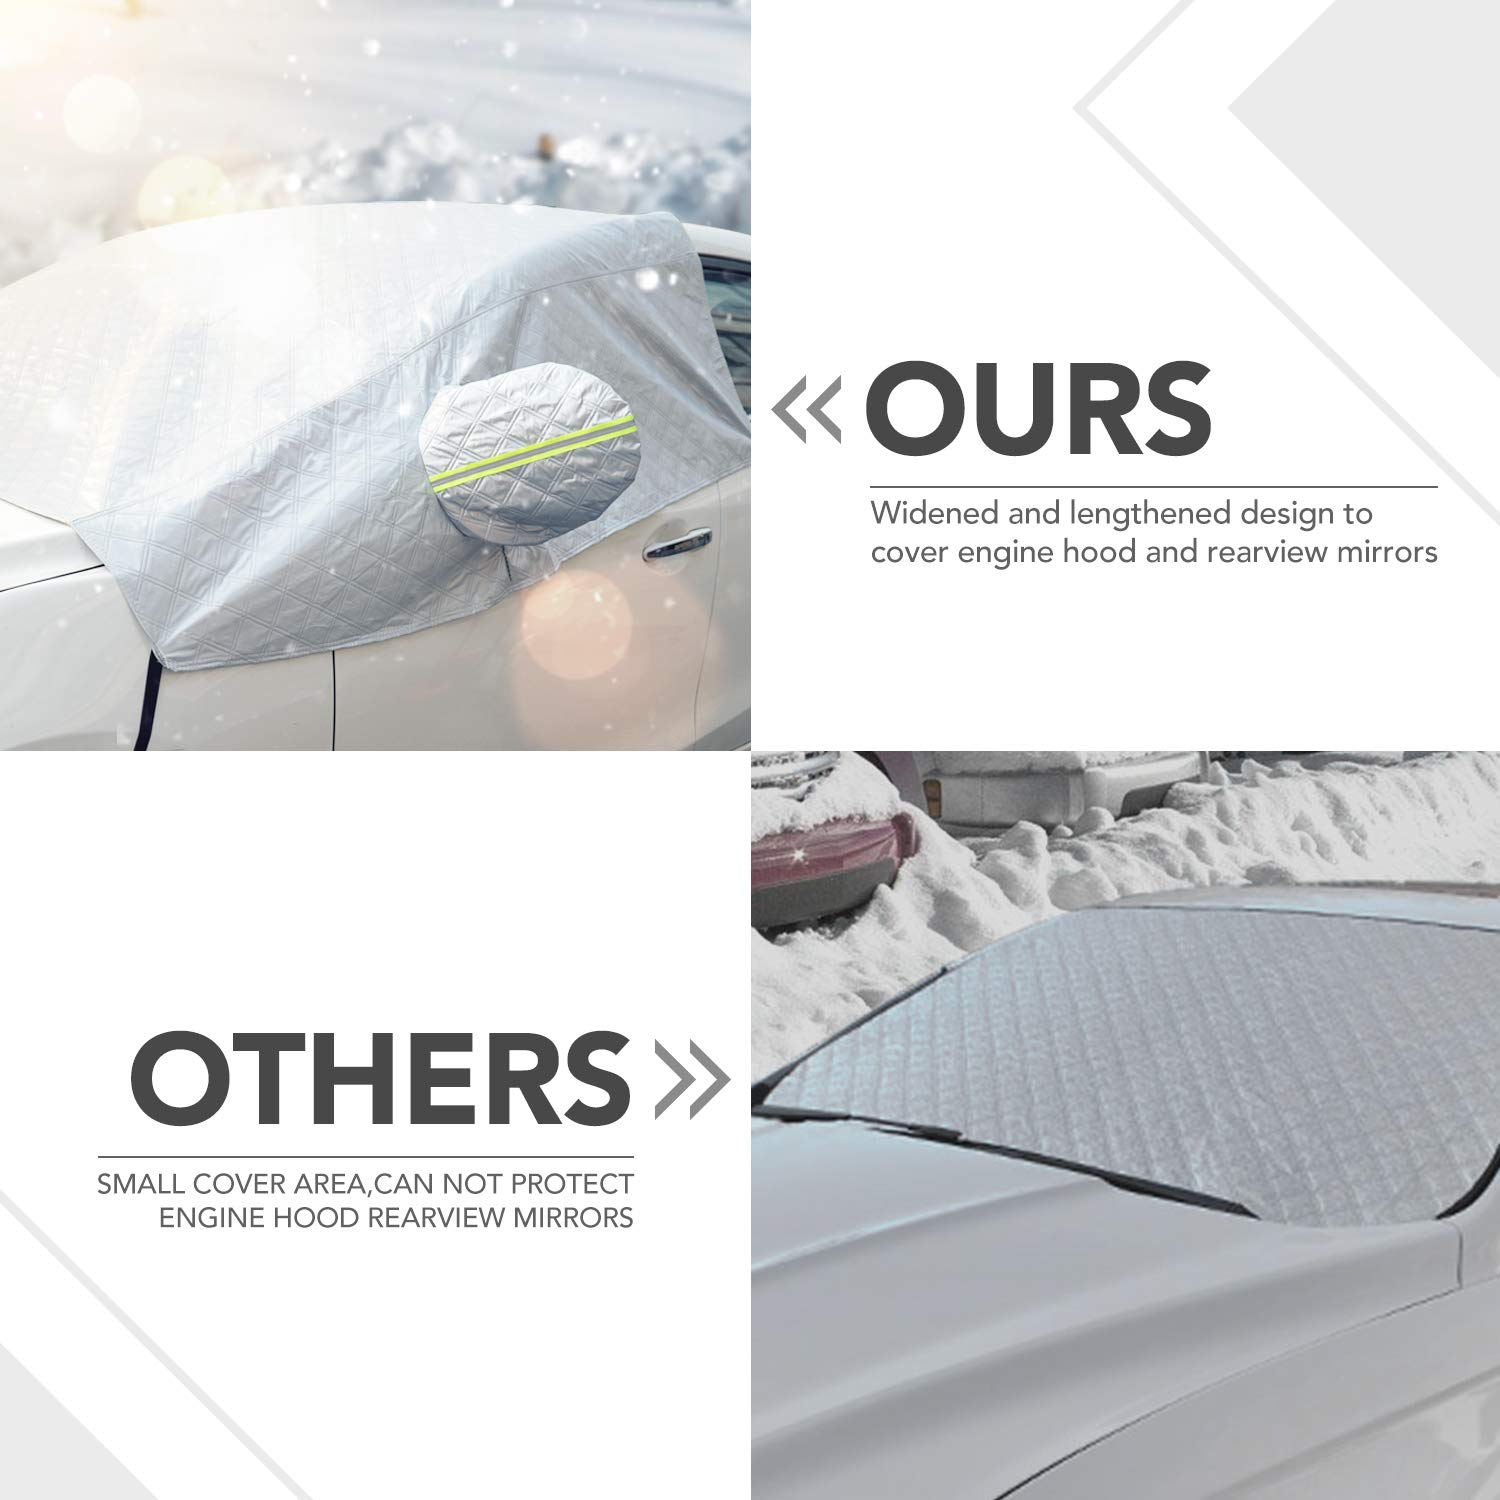 Windshield Snow Cover Windscreen Ice Cover with Rearview Mirror Protector Windshield Guard Extra Large Half Car Cover with Hook and Straps All Weather Auto Sun Shade Fit Most Car Truck SUV Van Sedan